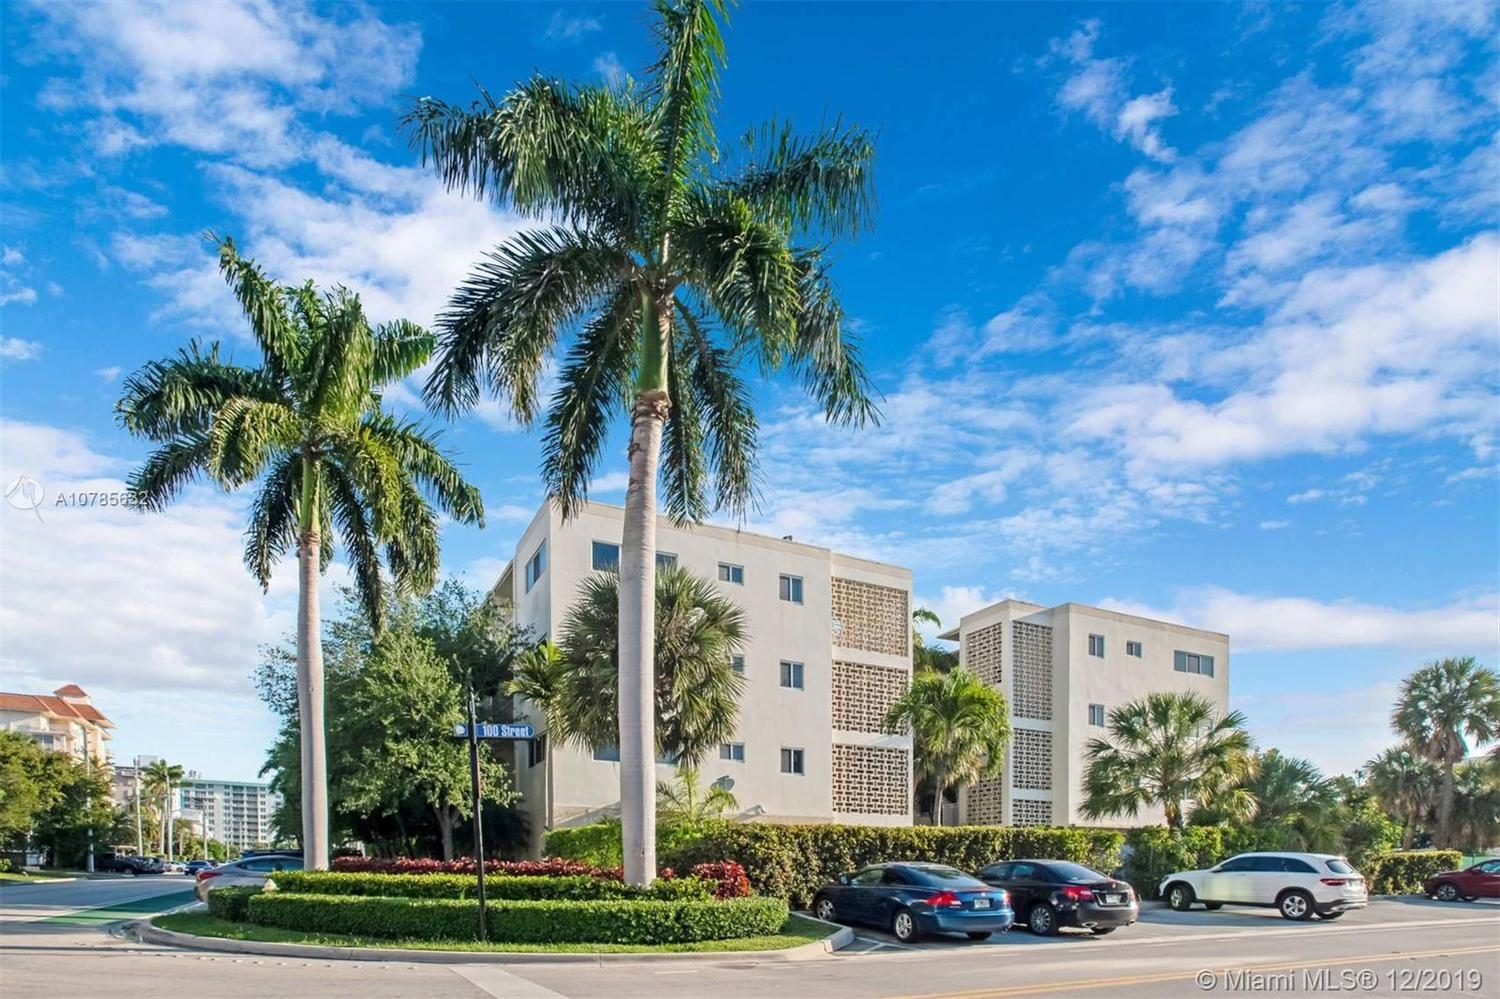 10001 West Bay Harbor Drive, Unit 208 Bay Harbor Islands, FL 33154